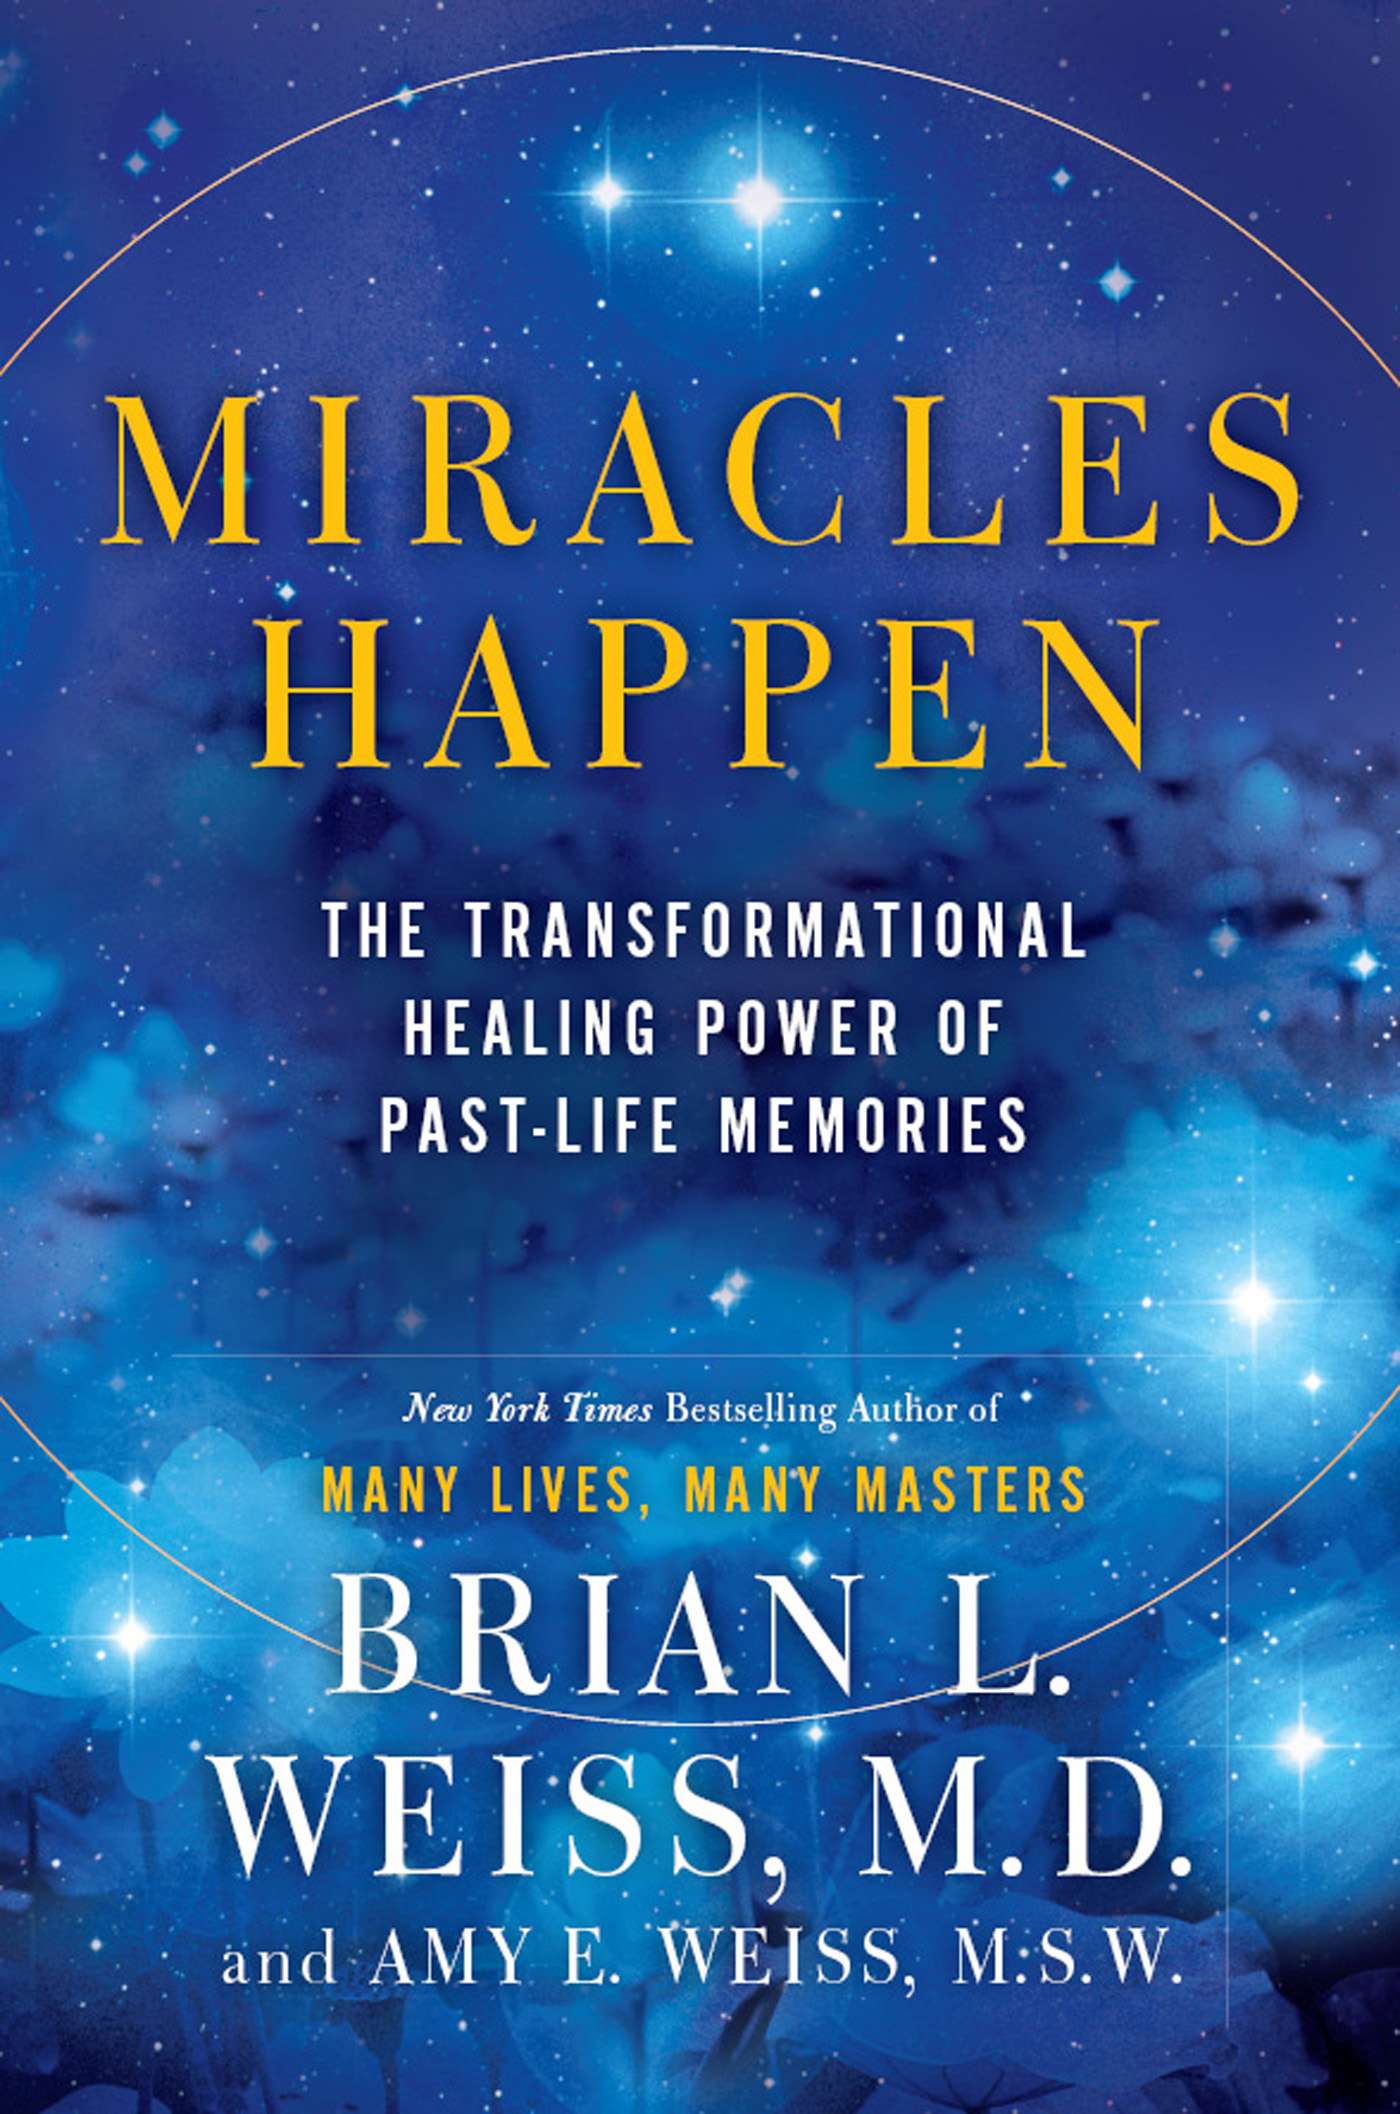 Past Life And Karmic Tarot By Edain Mccoy: Miracles Happen By Amy E. Weiss And Brian L. Weiss